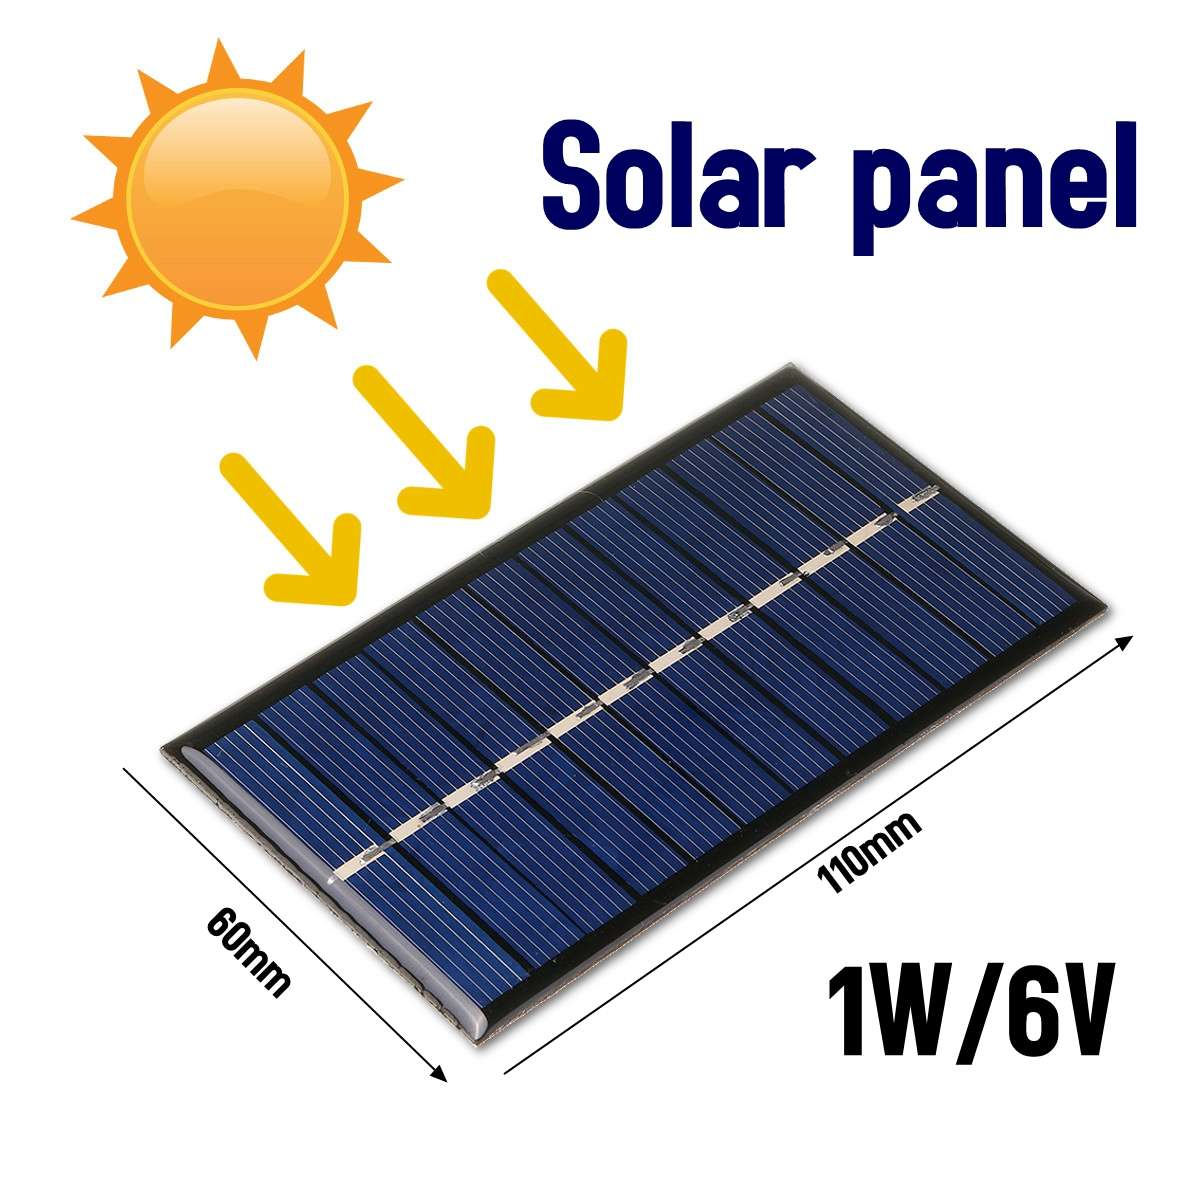 LEORY <font><b>6V</b></font> <font><b>1W</b></font> DIY <font><b>Solar</b></font> <font><b>Panel</b></font> 60*110mm Polycrystalline Portable Mini Module <font><b>Panel</b></font> System Epoxy Board for Learning image